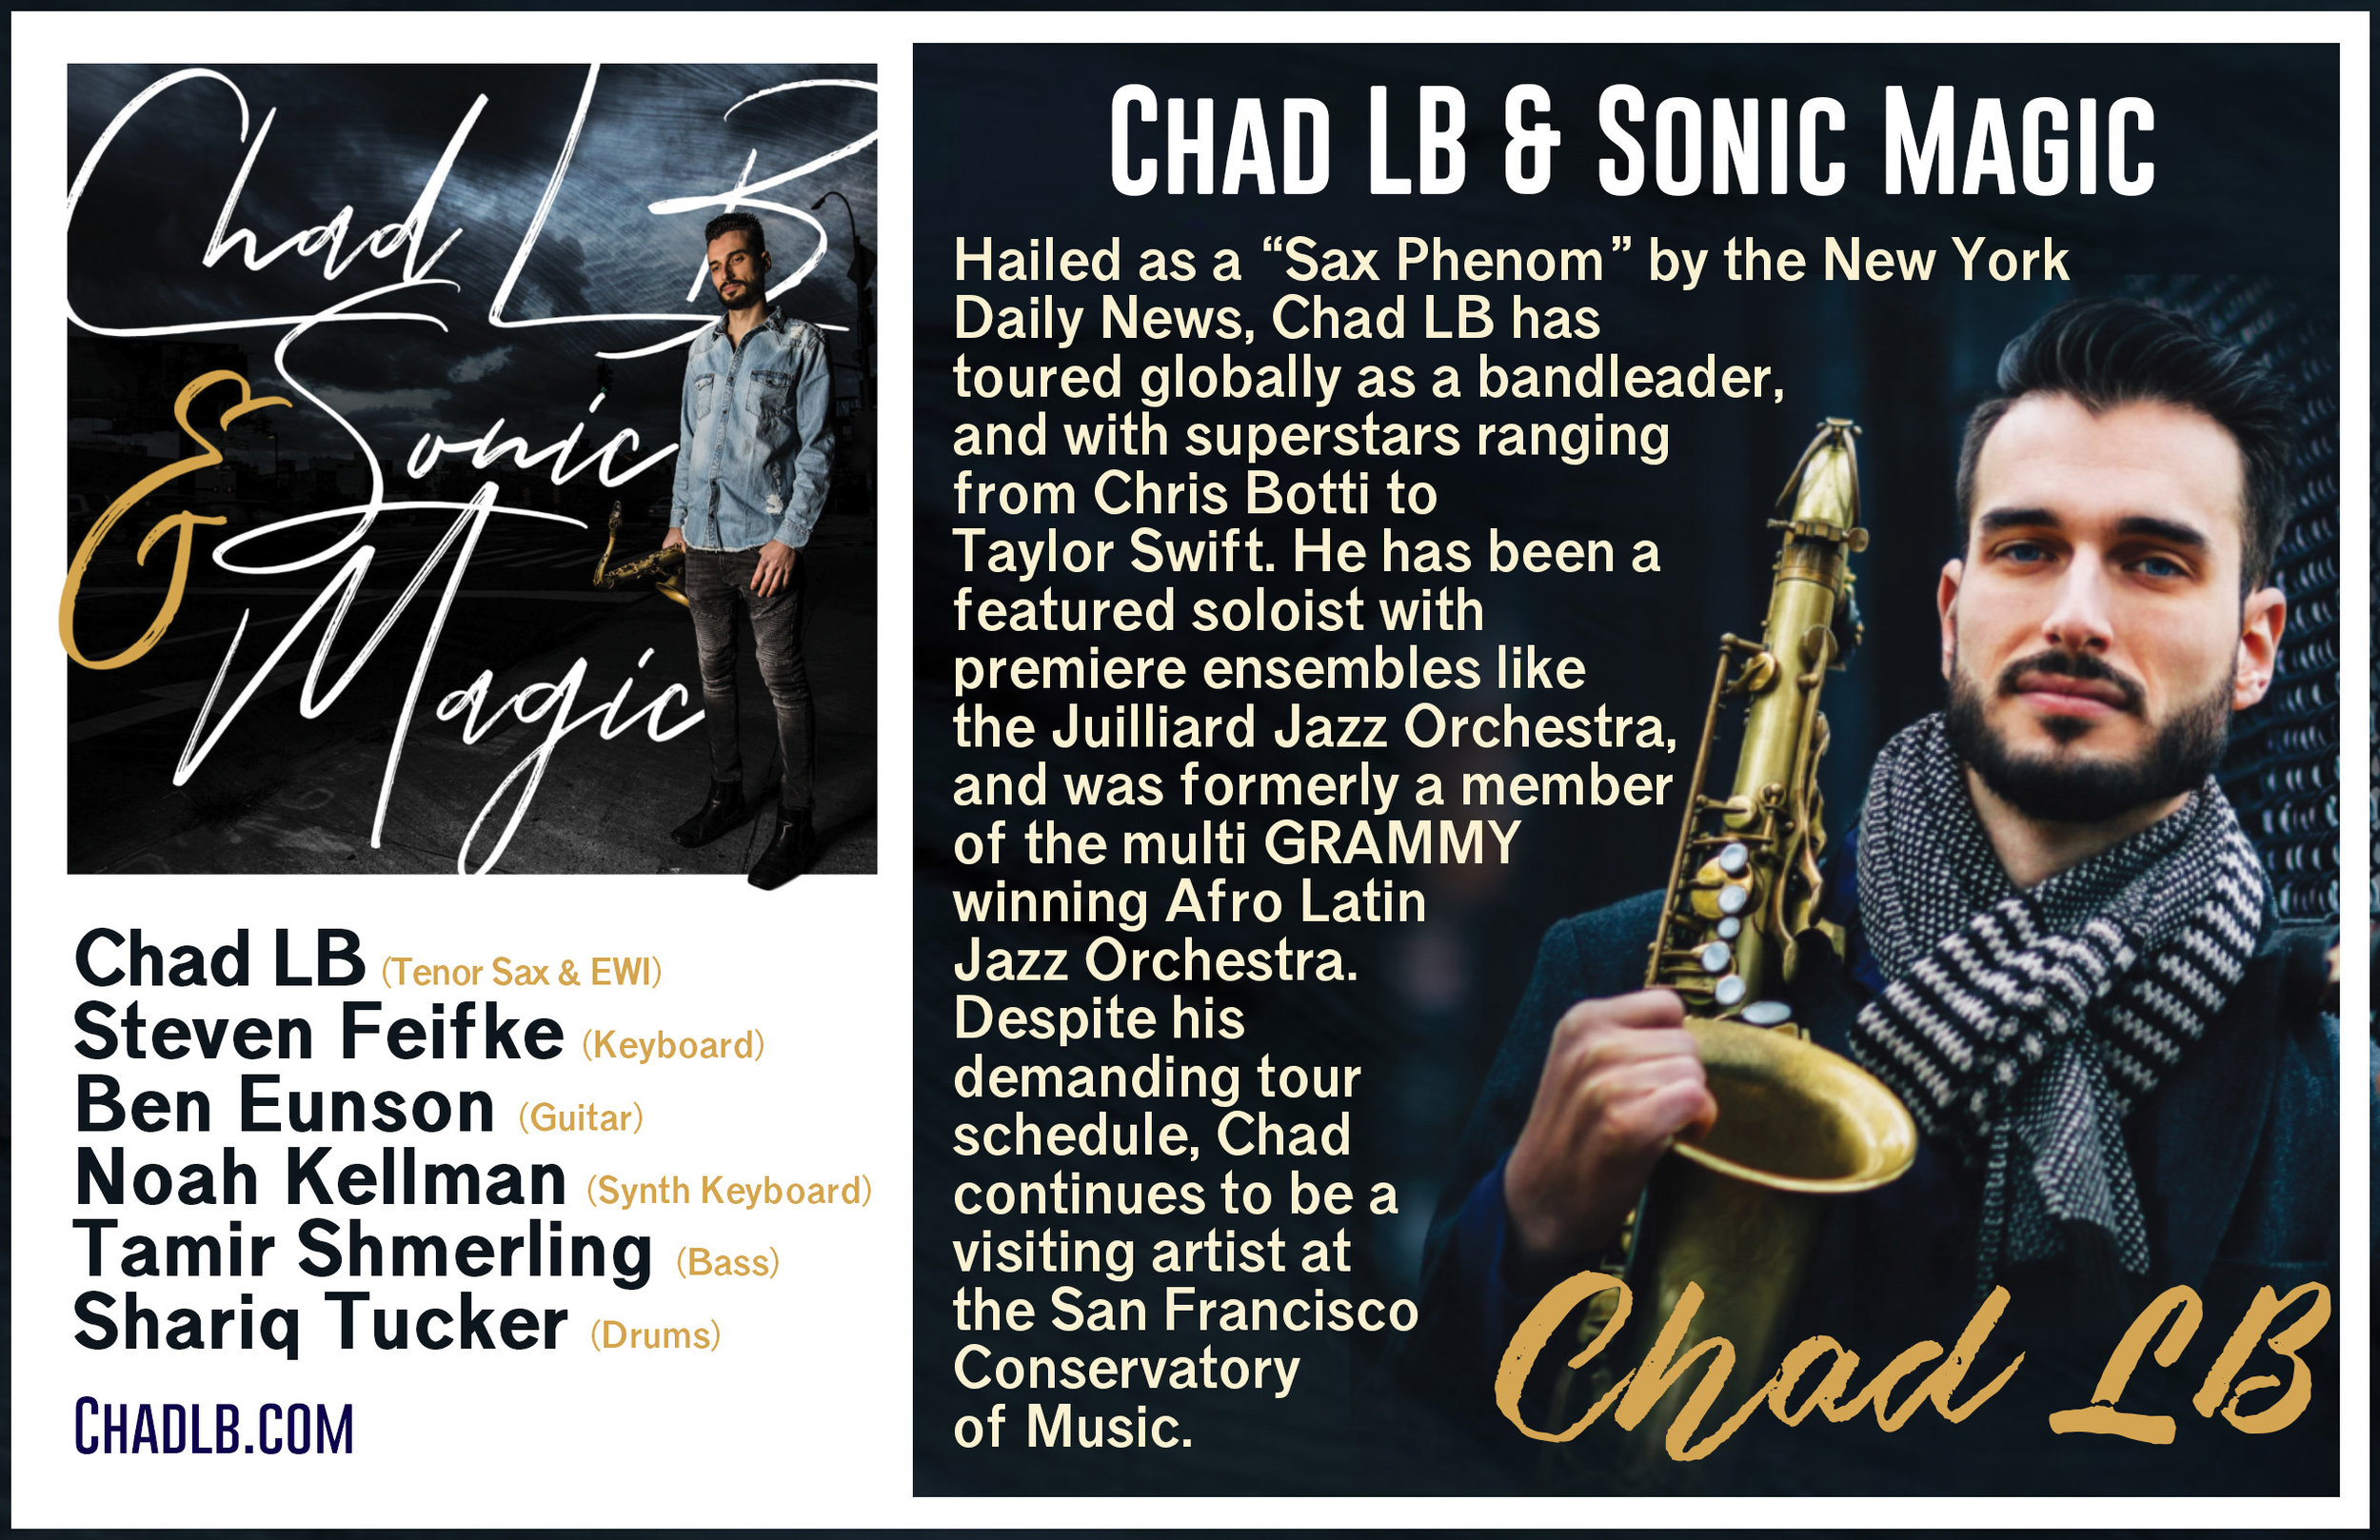 Chad LB & Sonic Magic